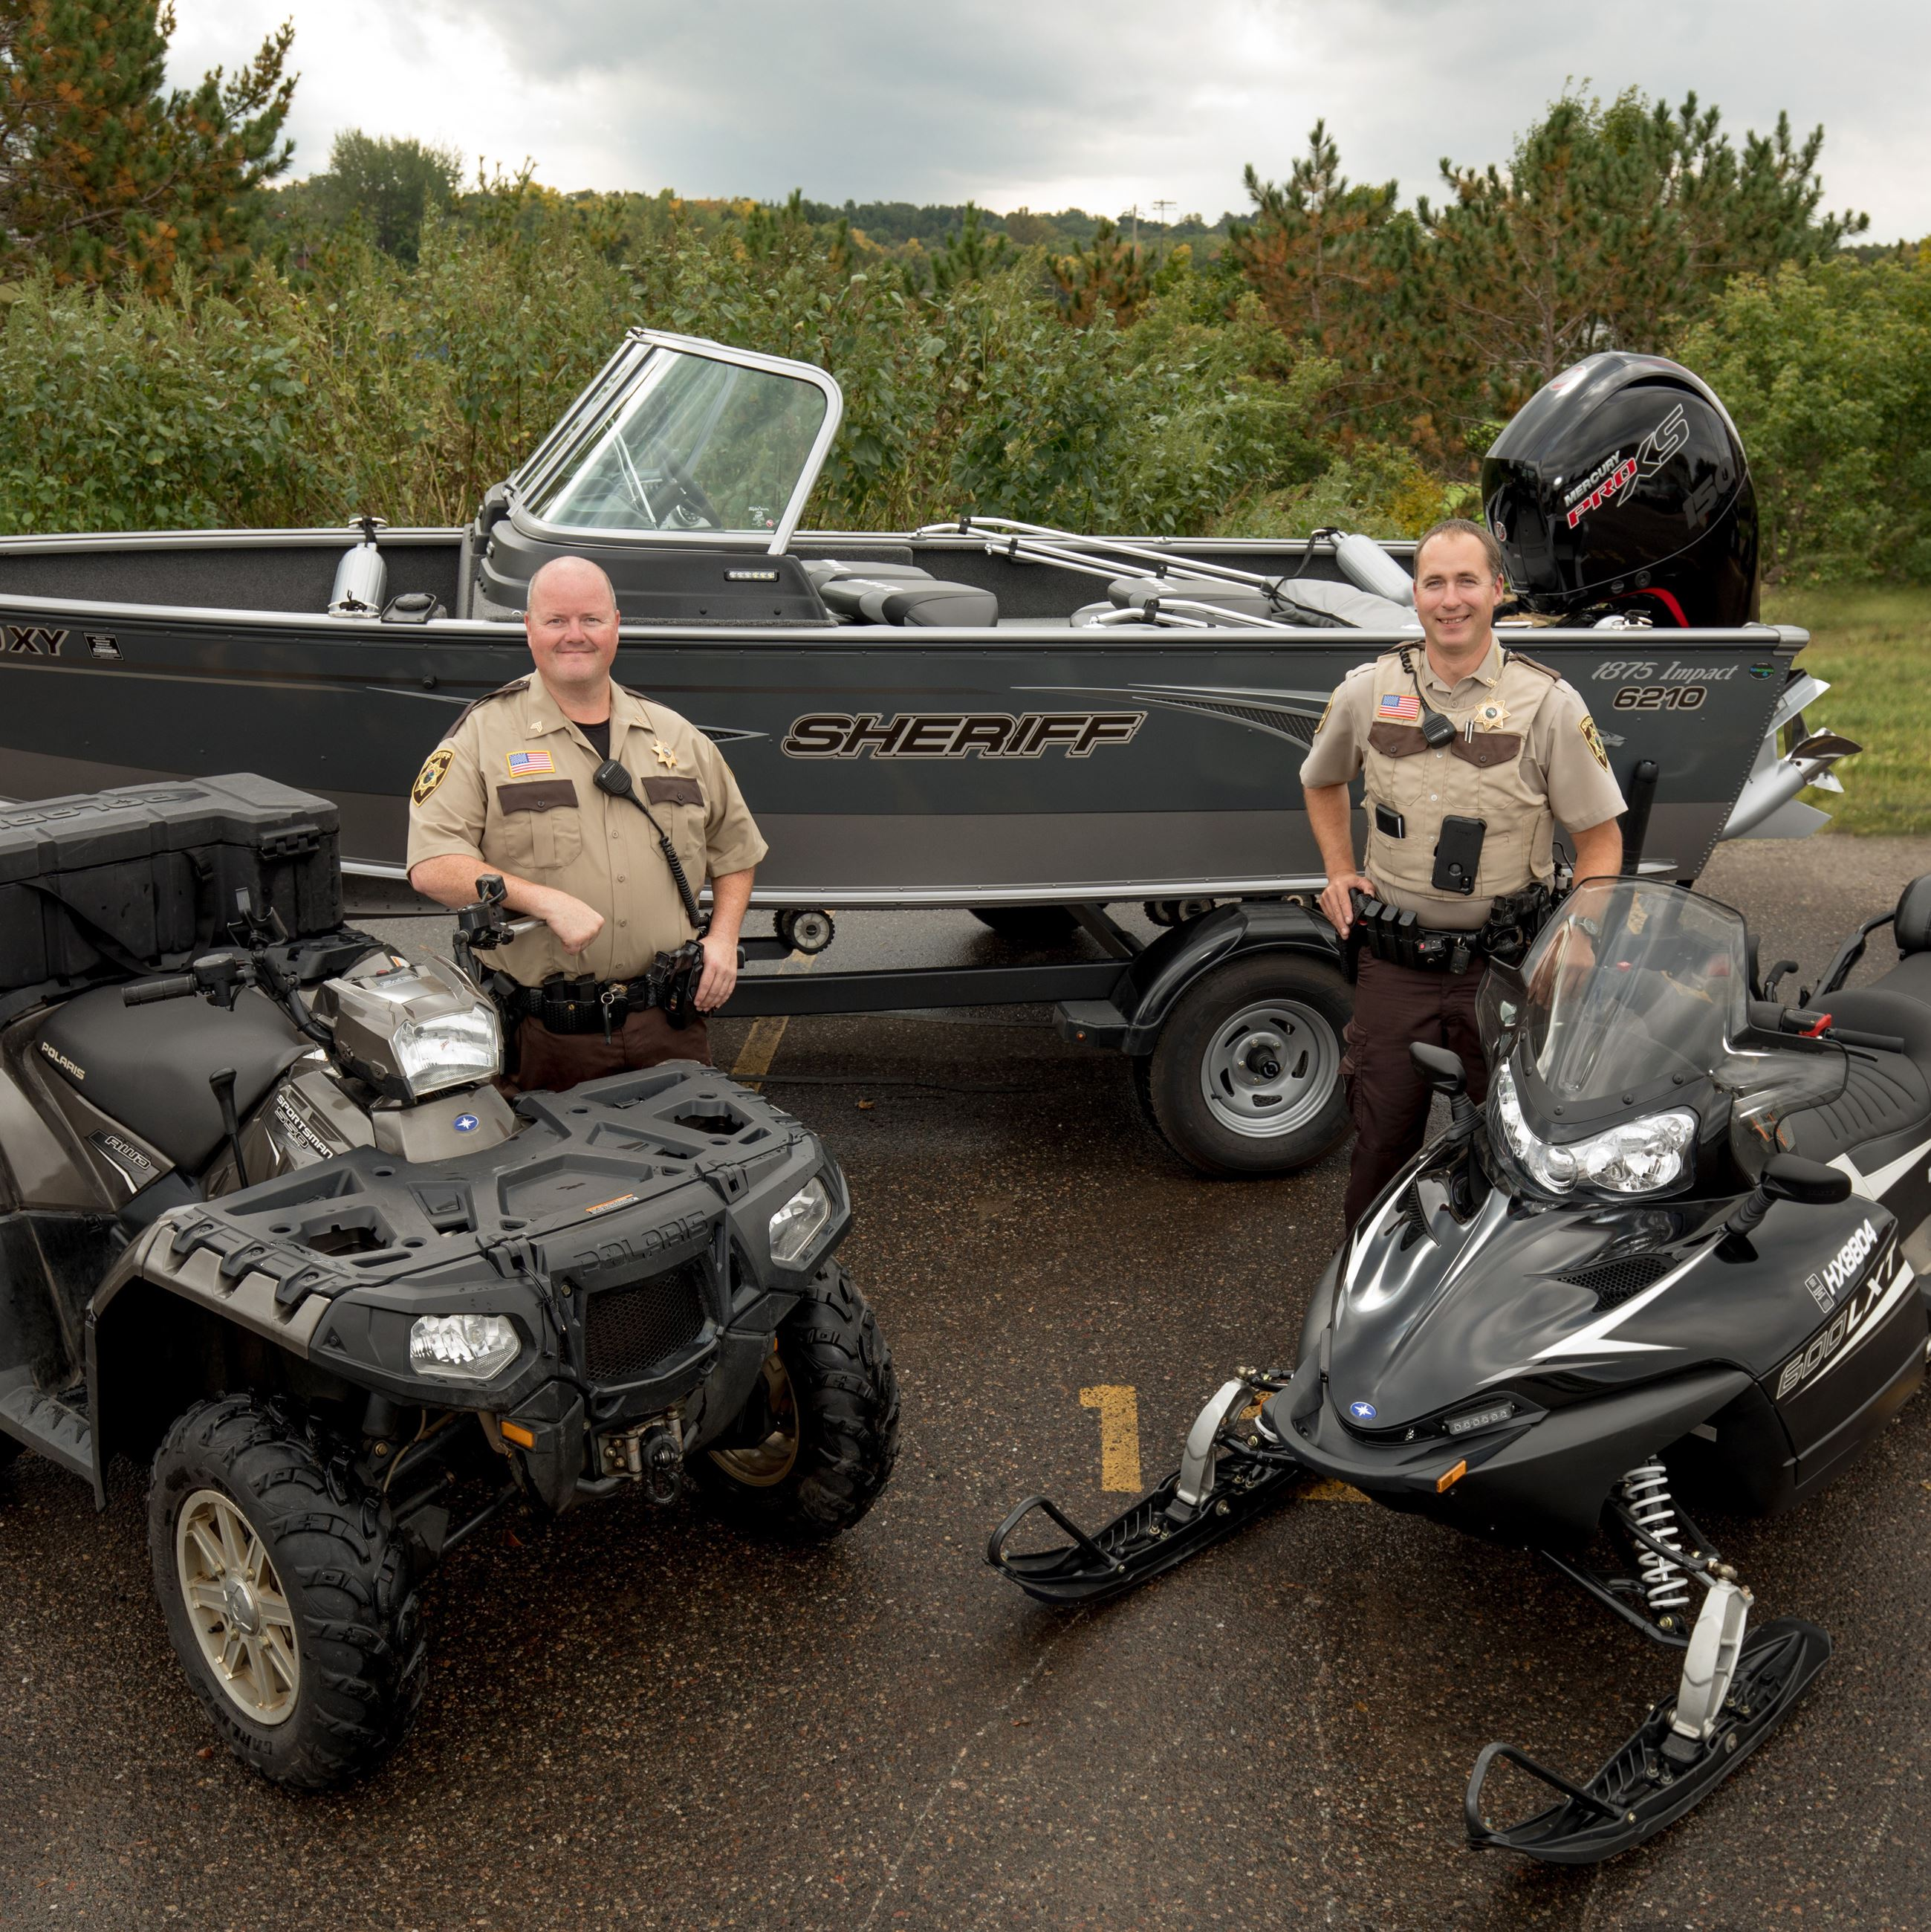 Recreation - boat, ATV, snowmobile